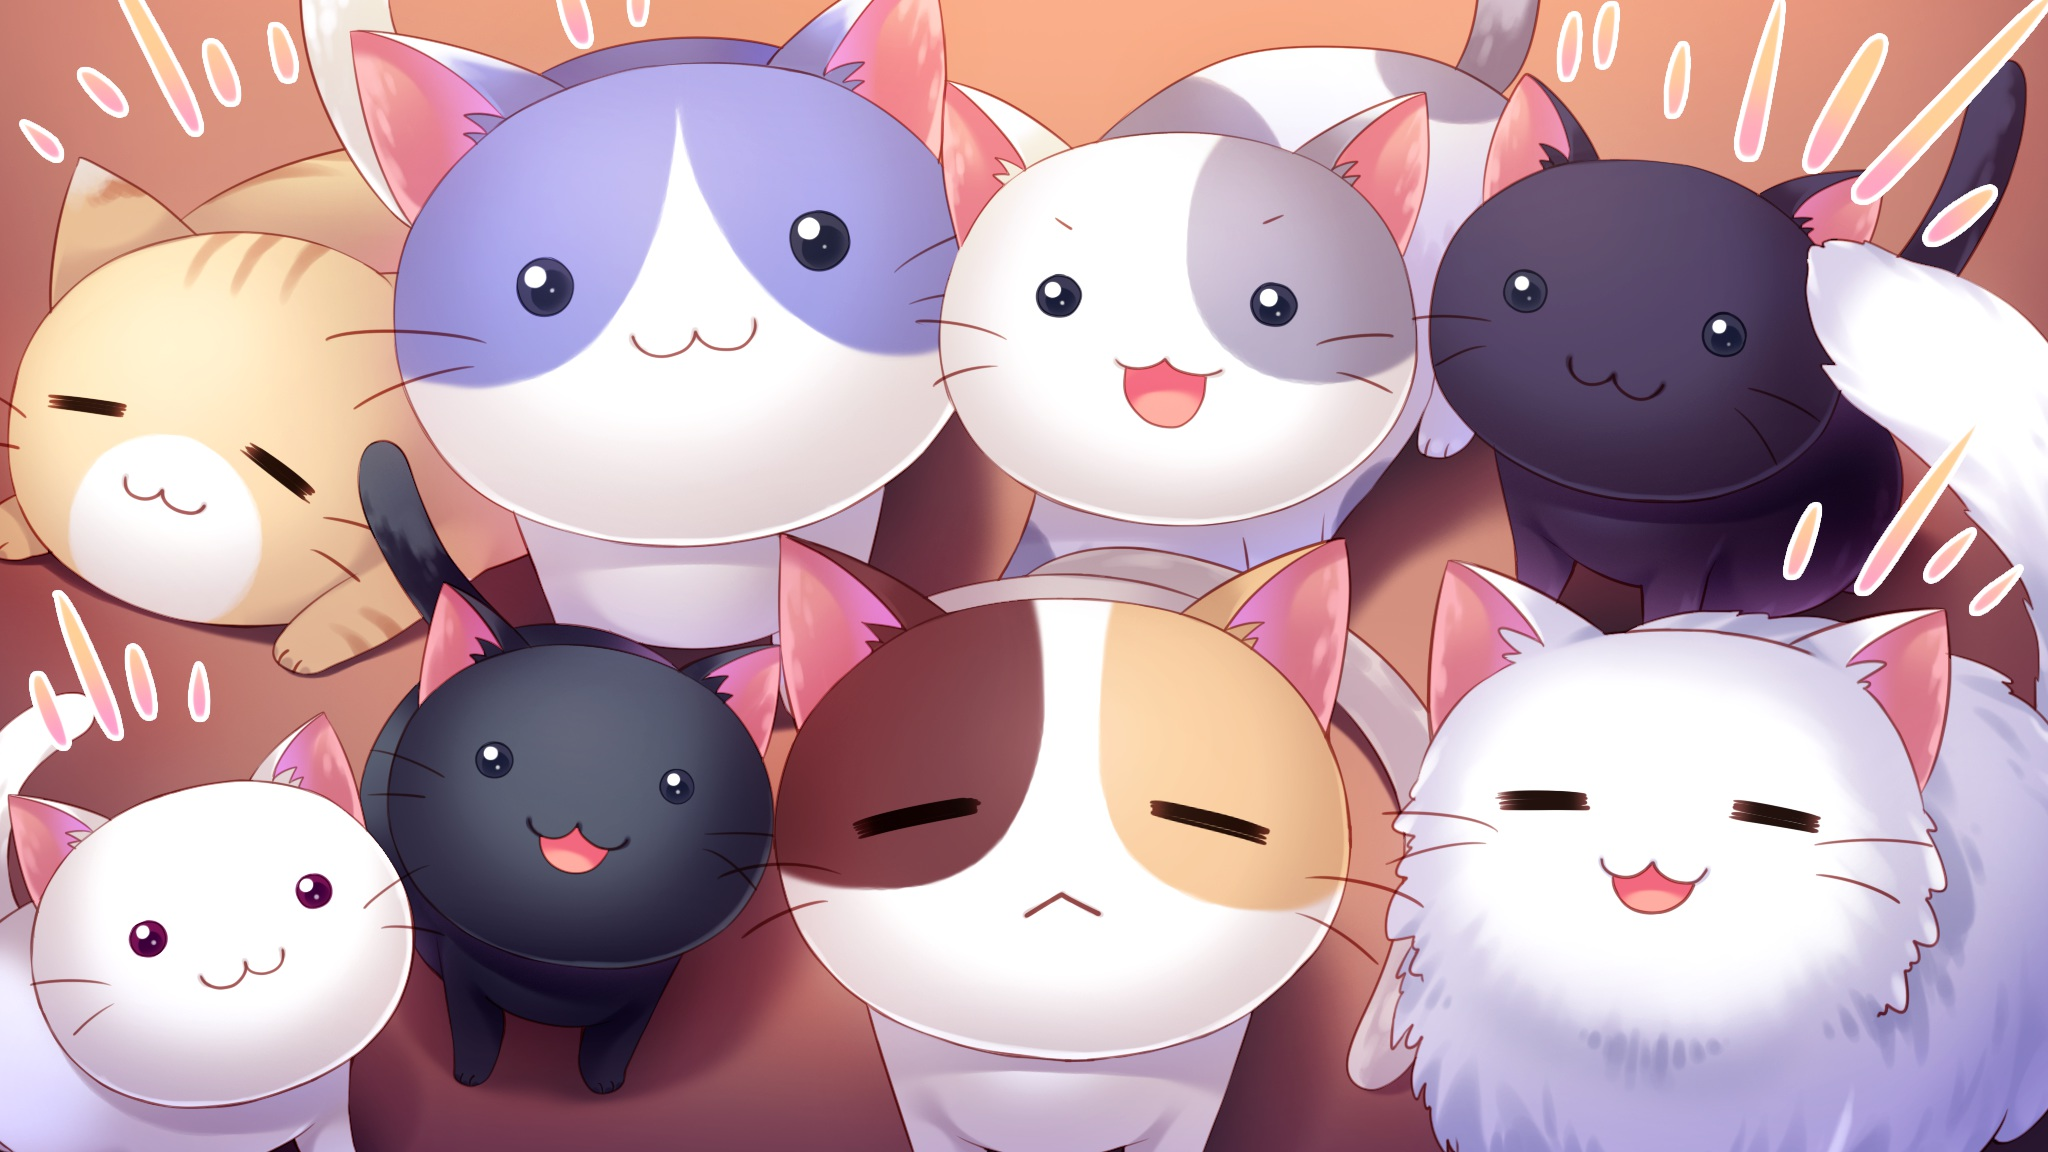 Anime Cat Wallpaper - WallpaperSafari